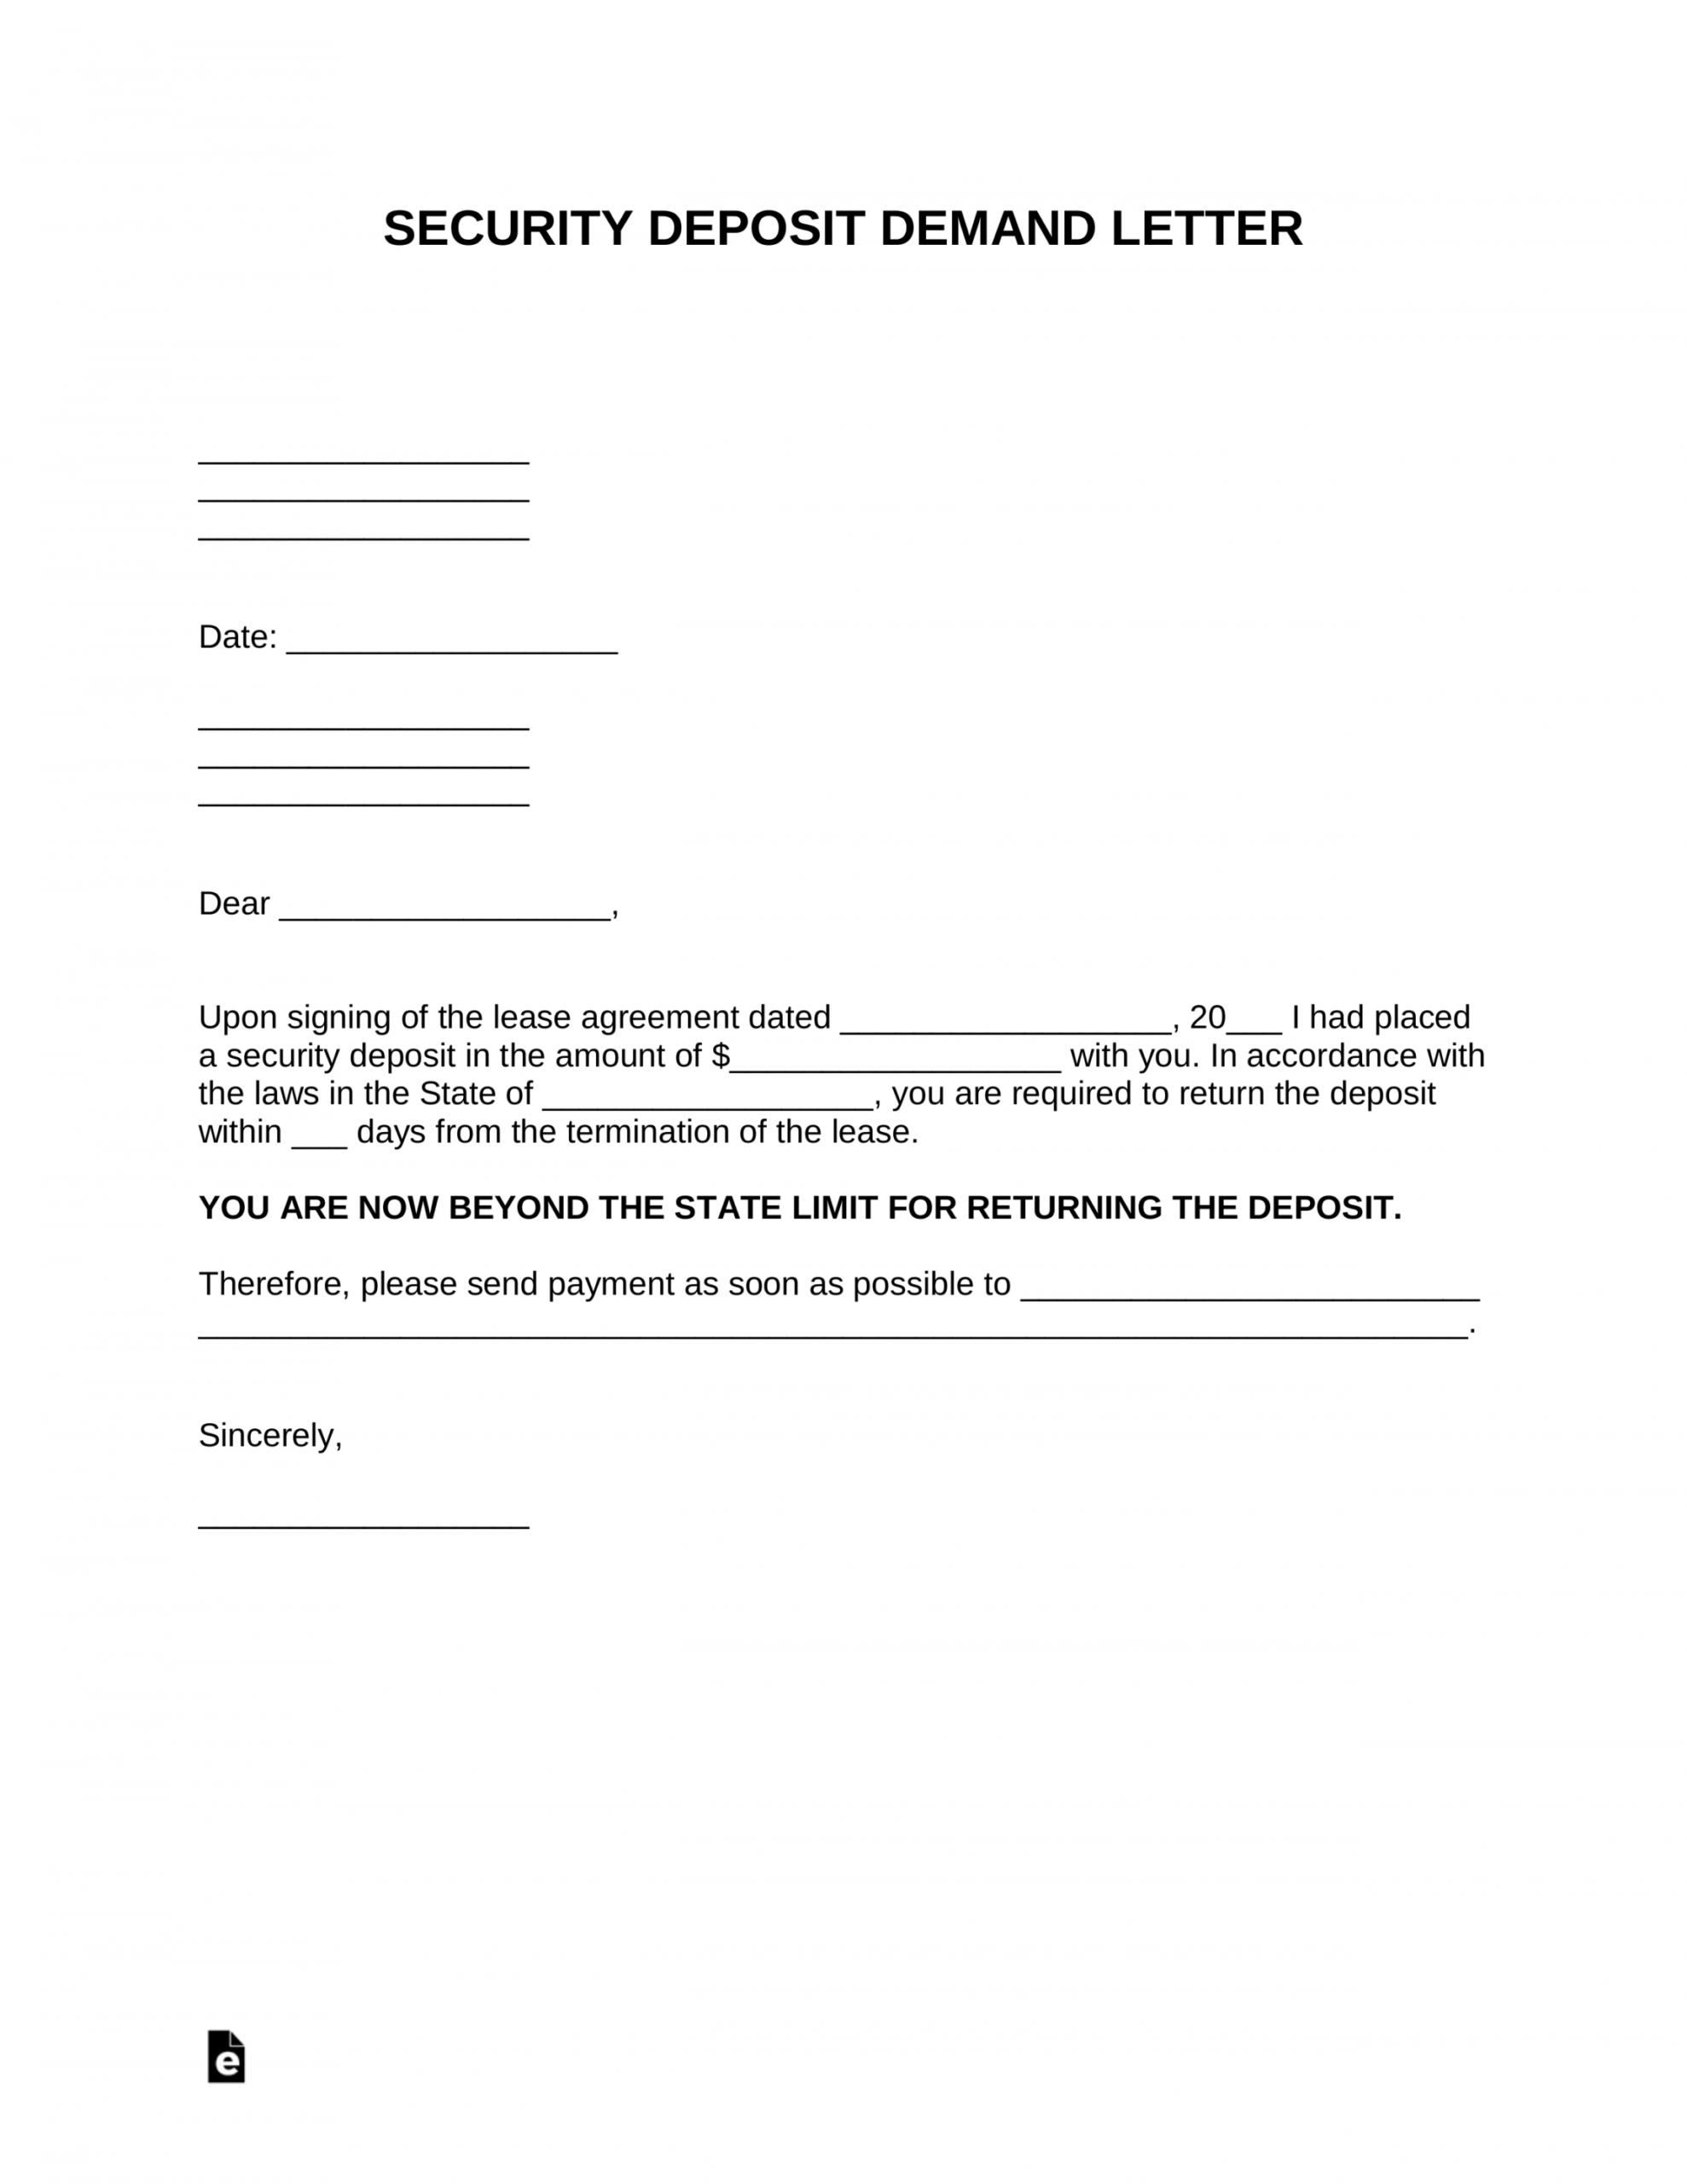 free free security deposit demand letter template  pdf  word security deposit demand letter excel